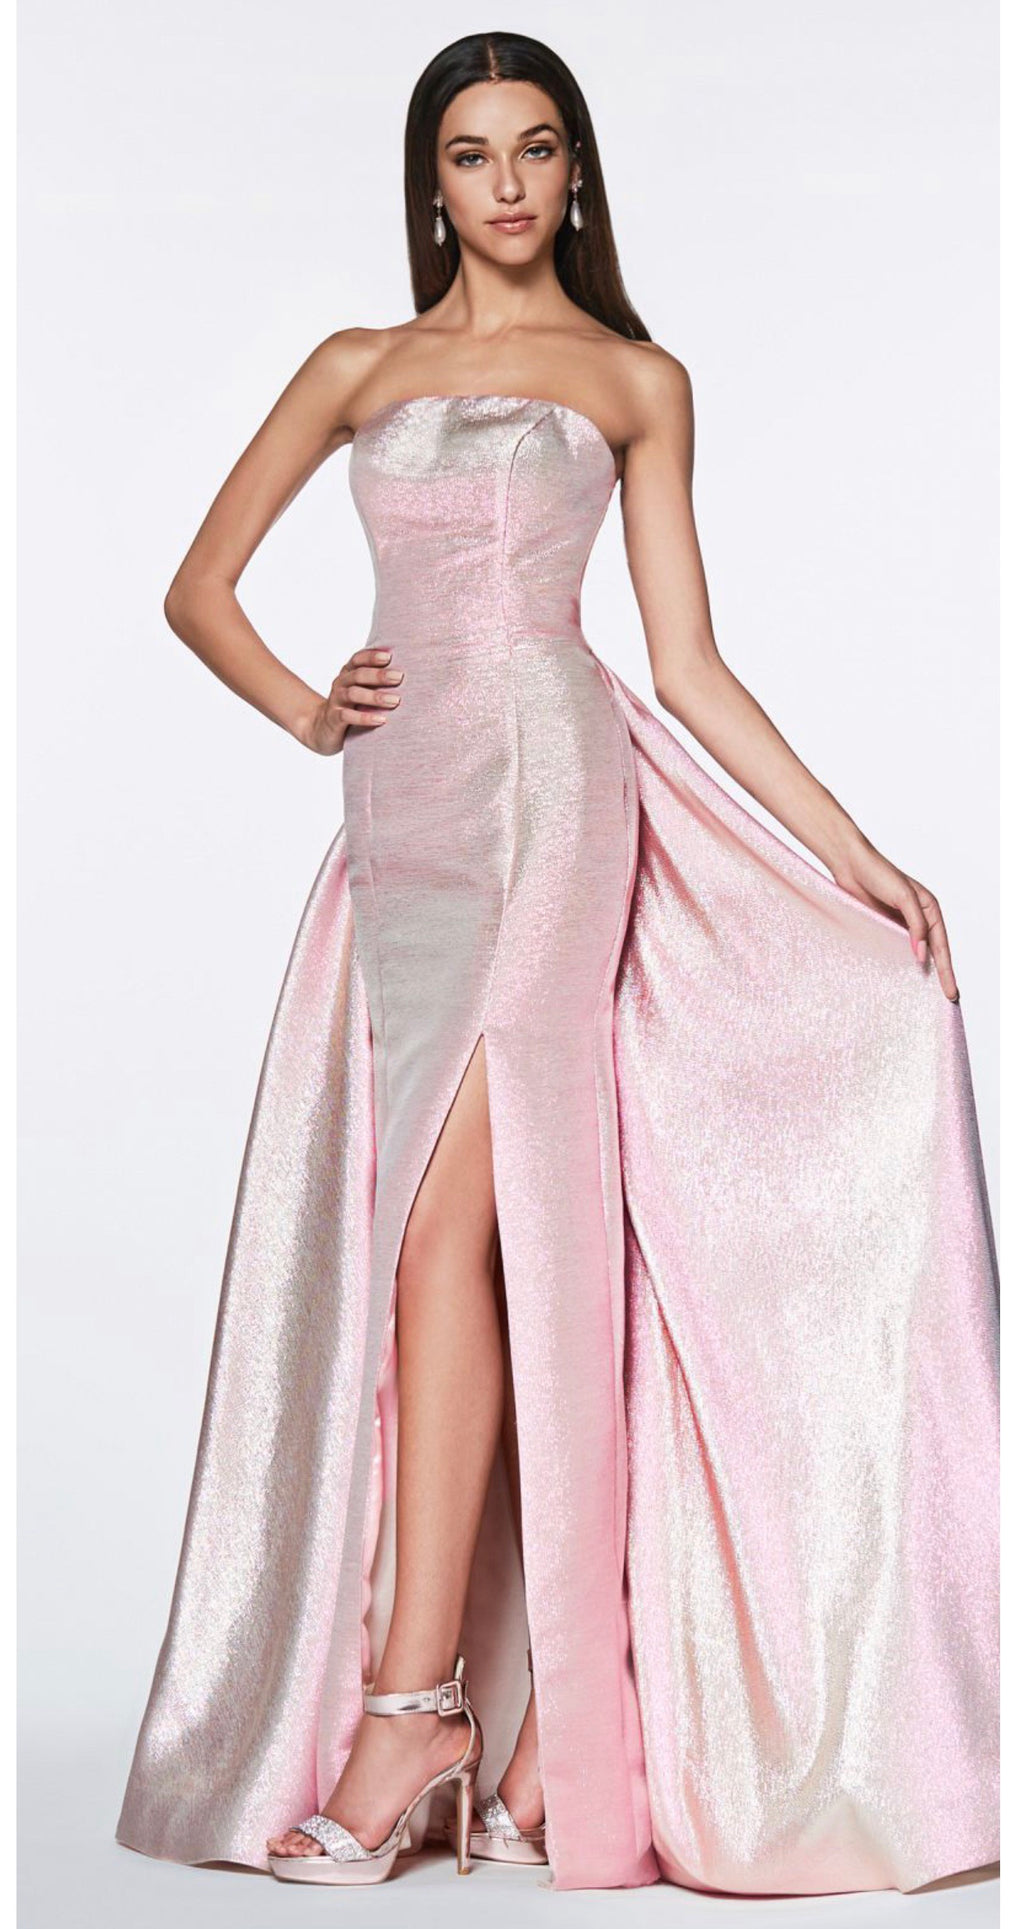 Cinderella Divine CR834 Strapless Metallic Dress - CYC Boutique